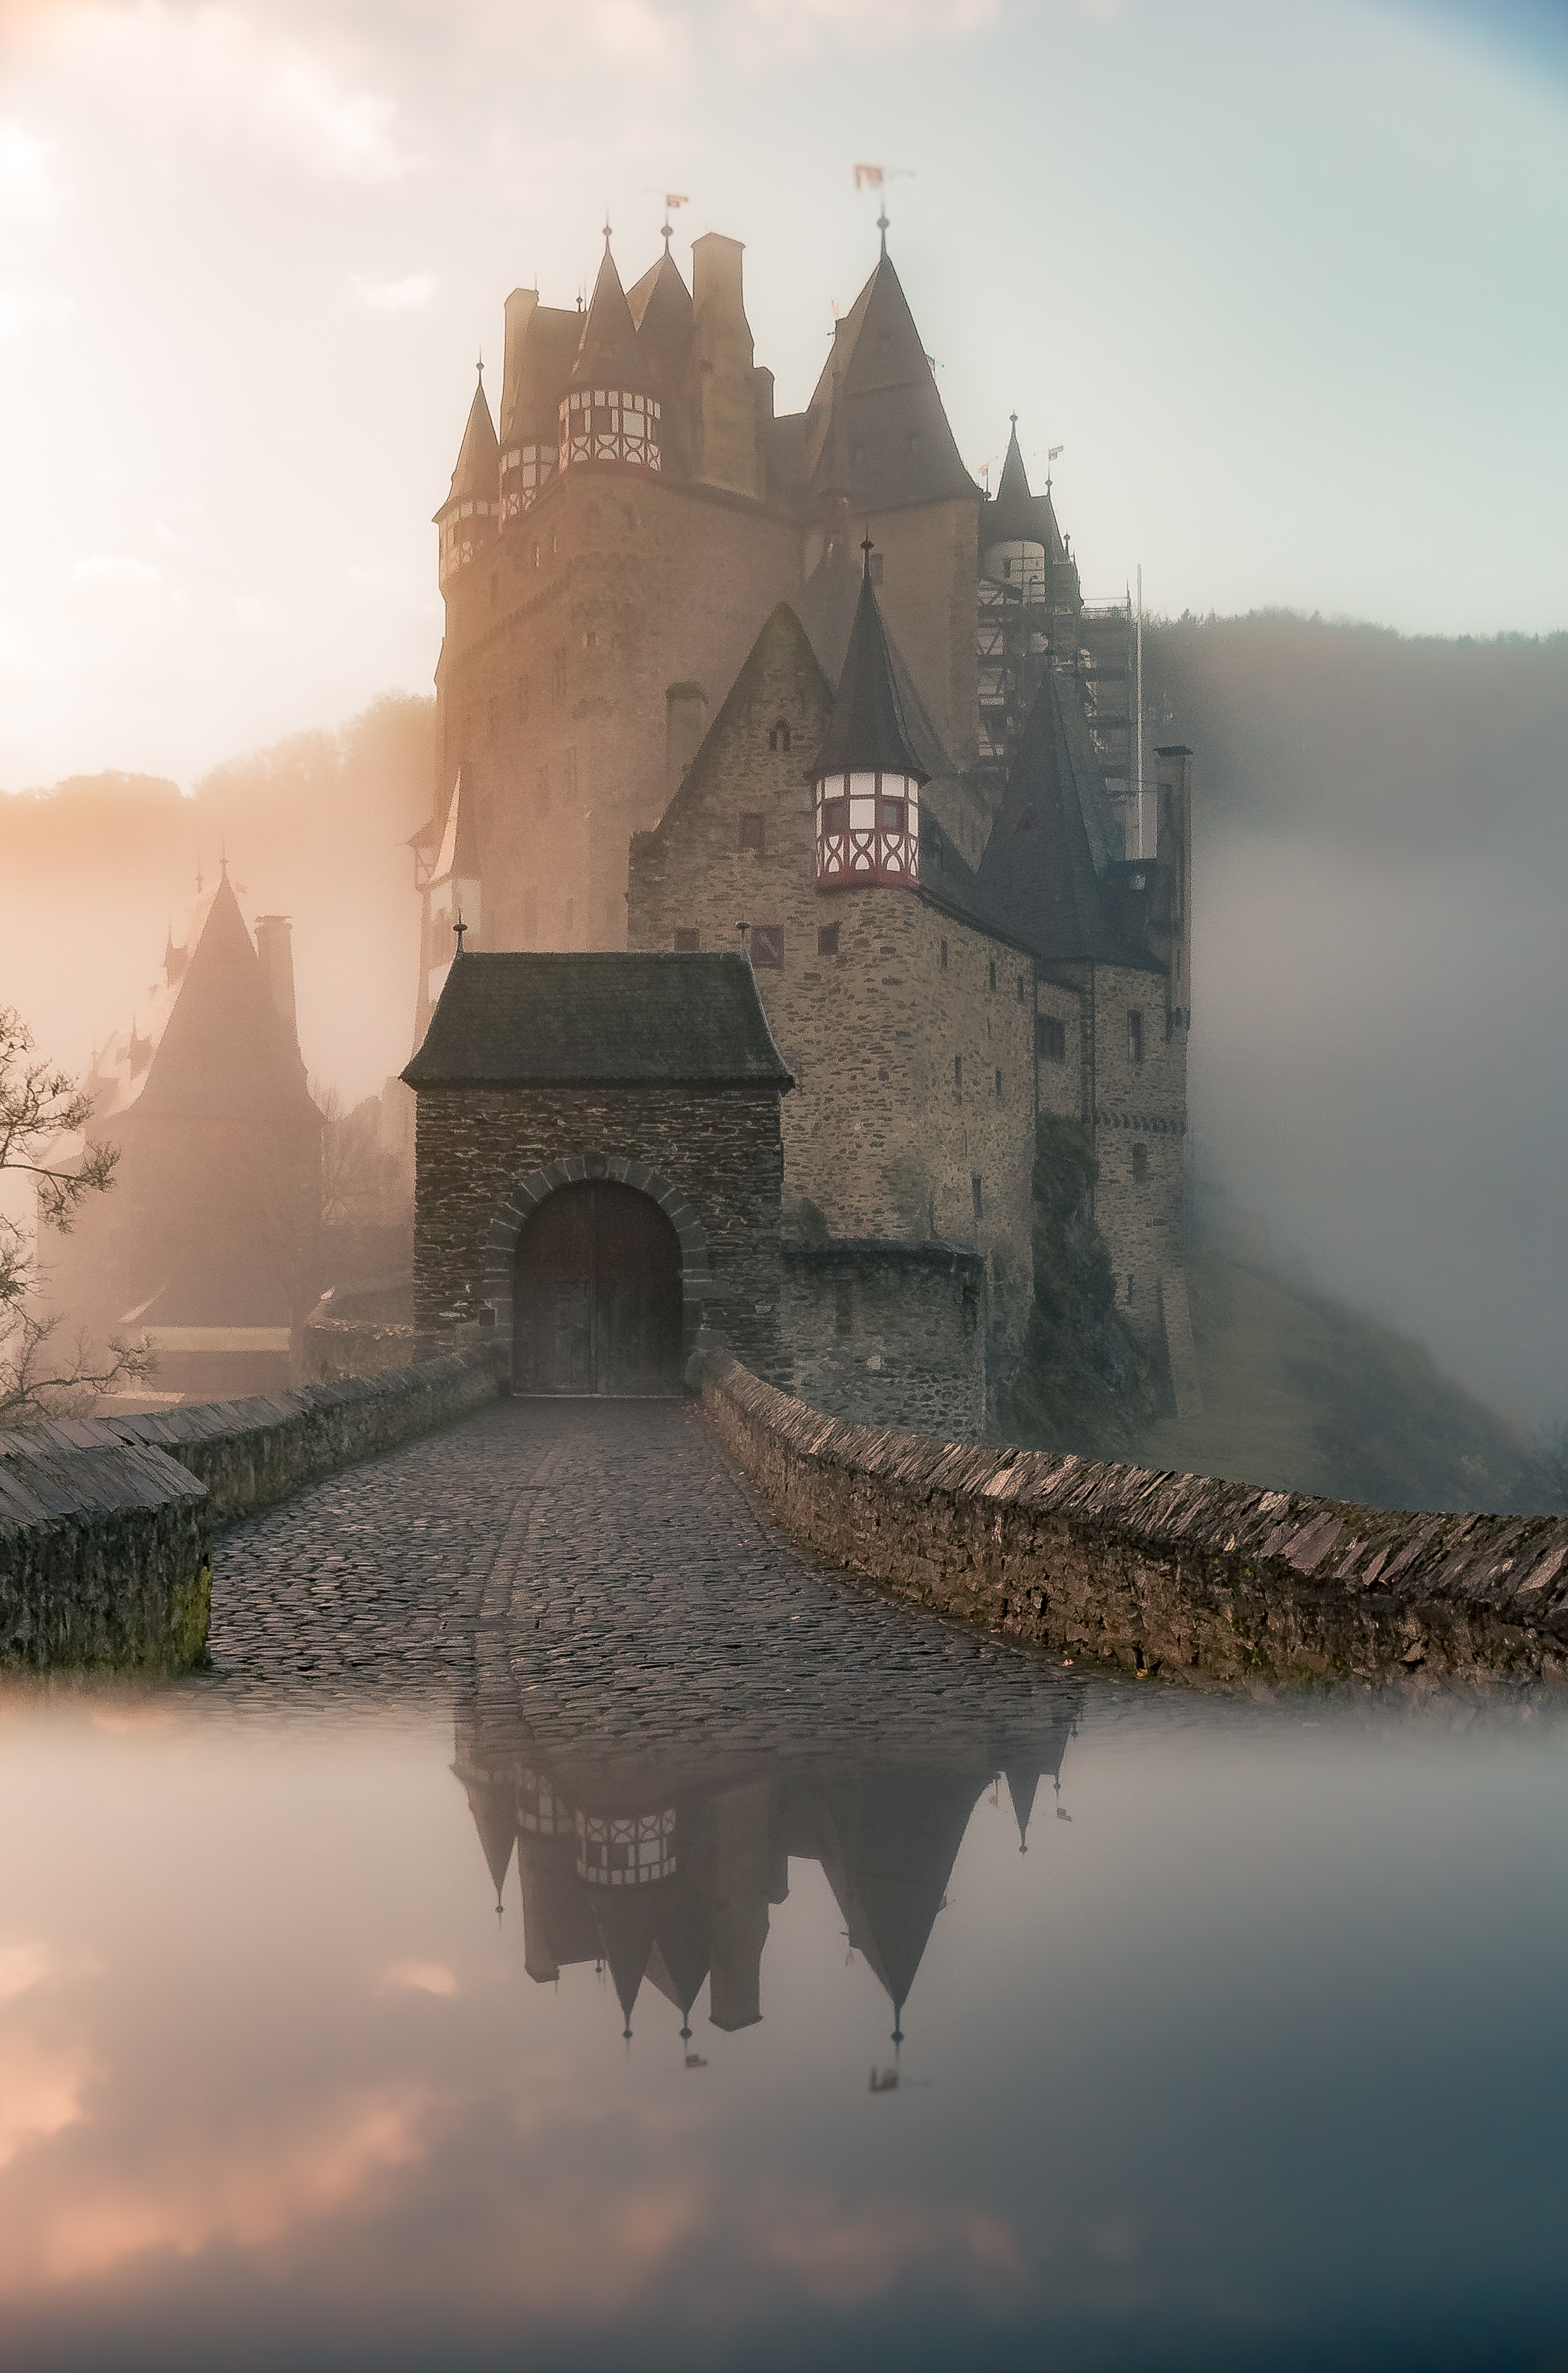 Kings, Painters and Video Games: A Fairy Tale Revision